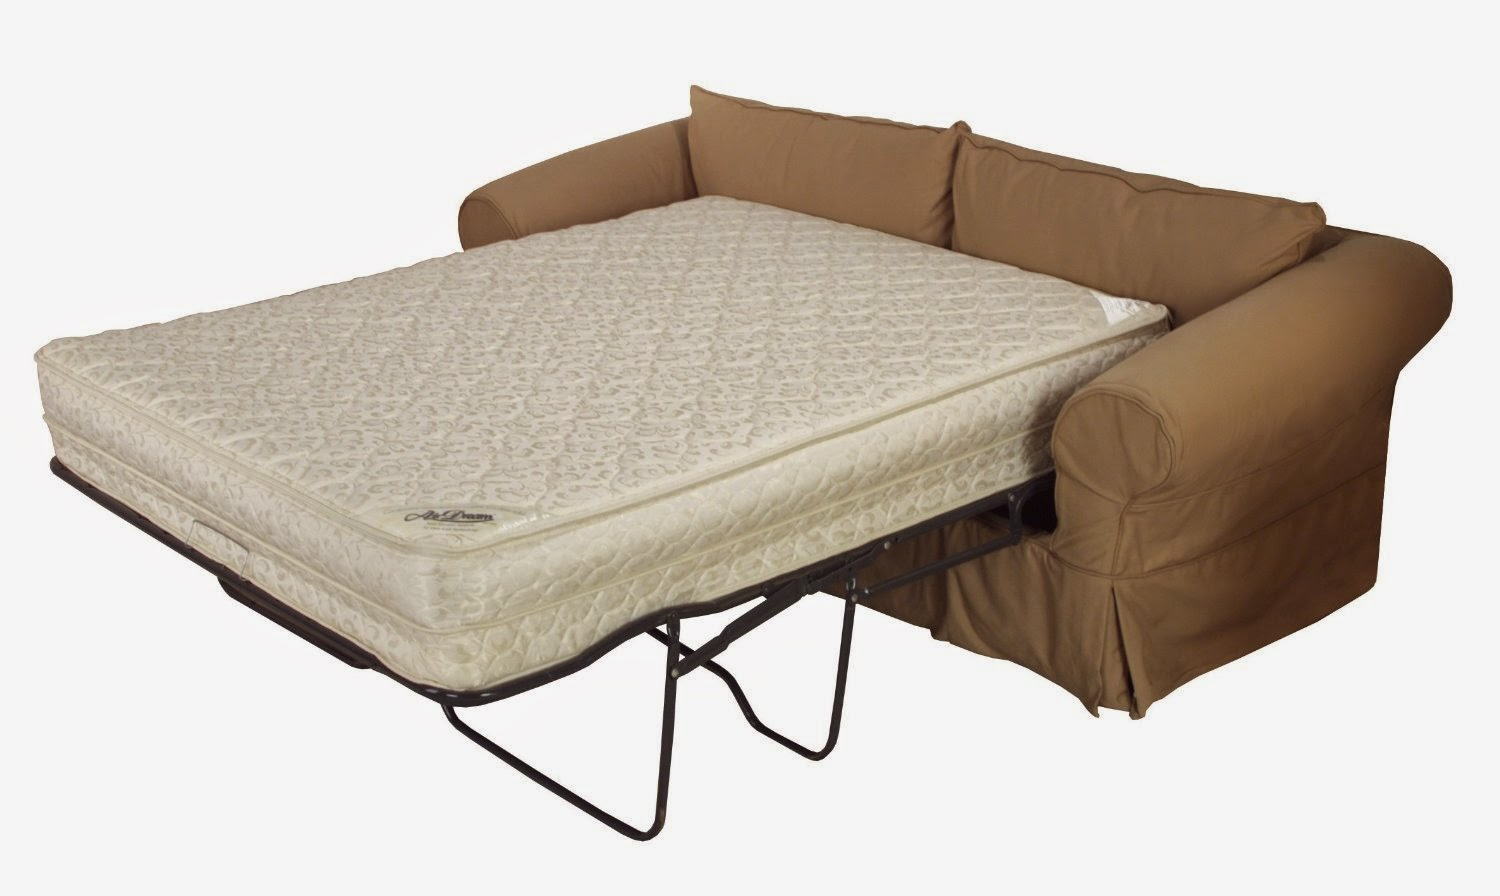 pull out couch: pull out couch mattress